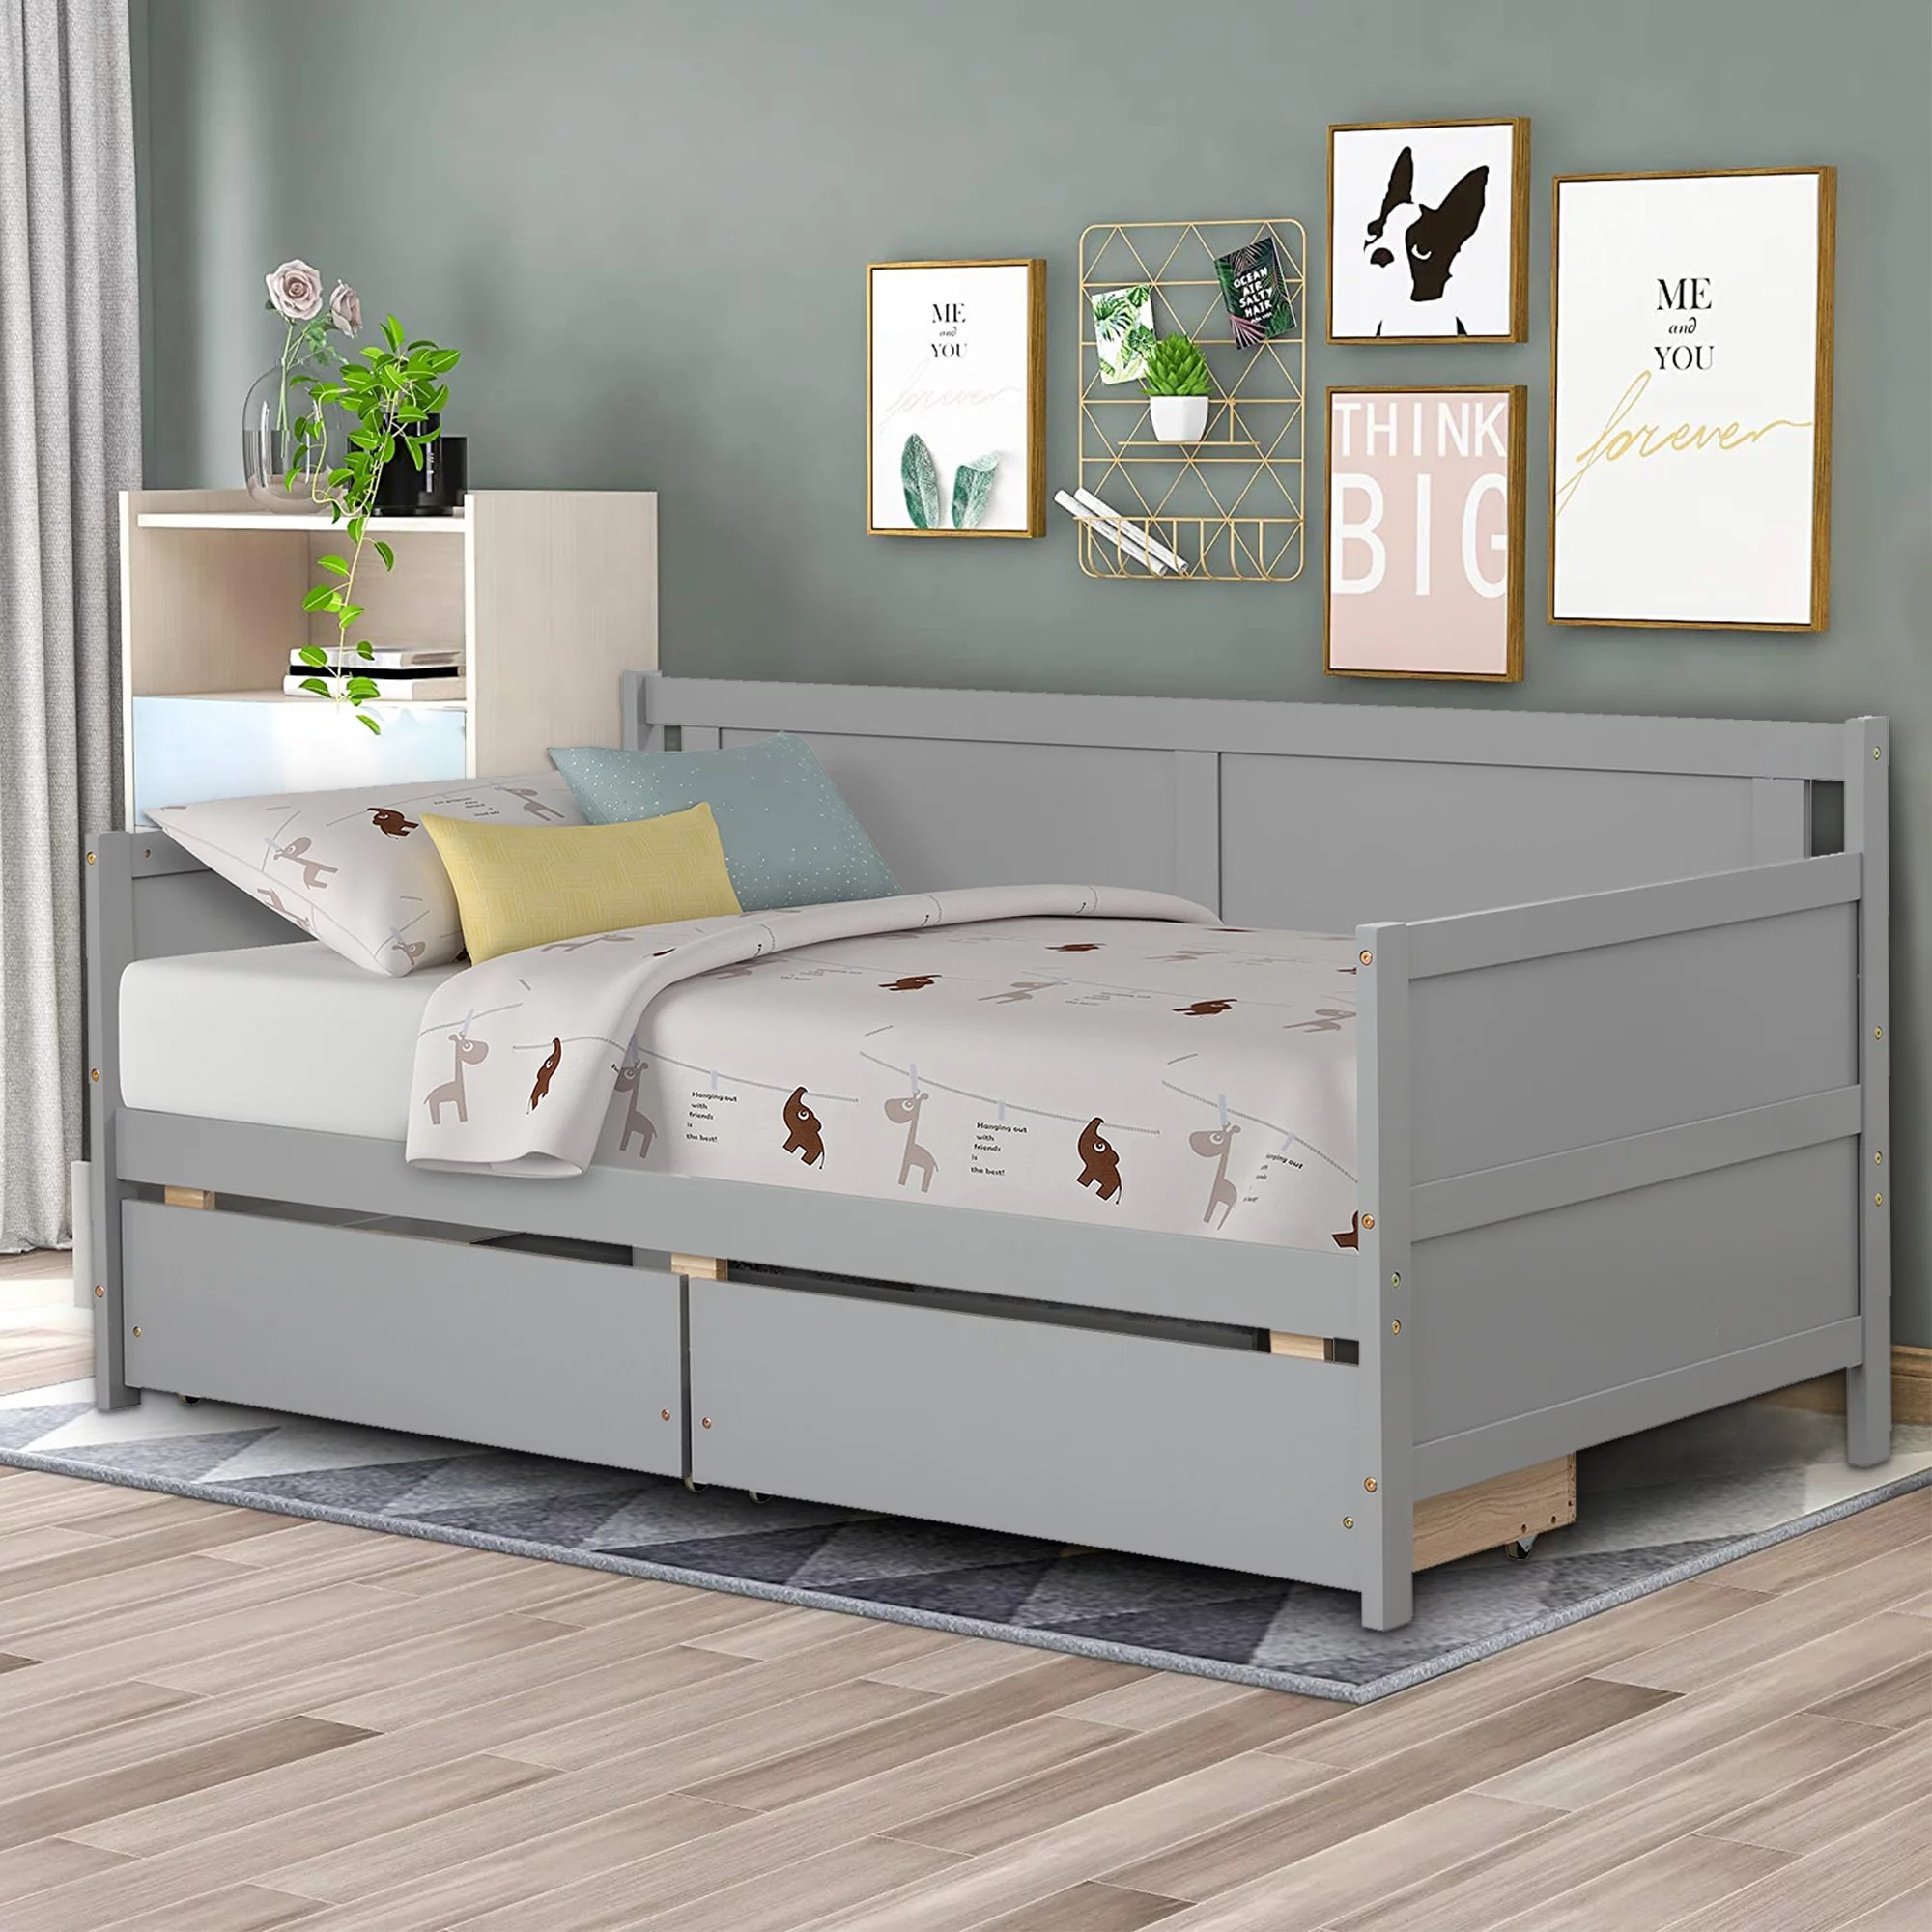 Twin Daybed Bed, 2021 Stylish Modern Captain's Bed with 2 Storage Drawers, Wood Farmhouse Twin ...